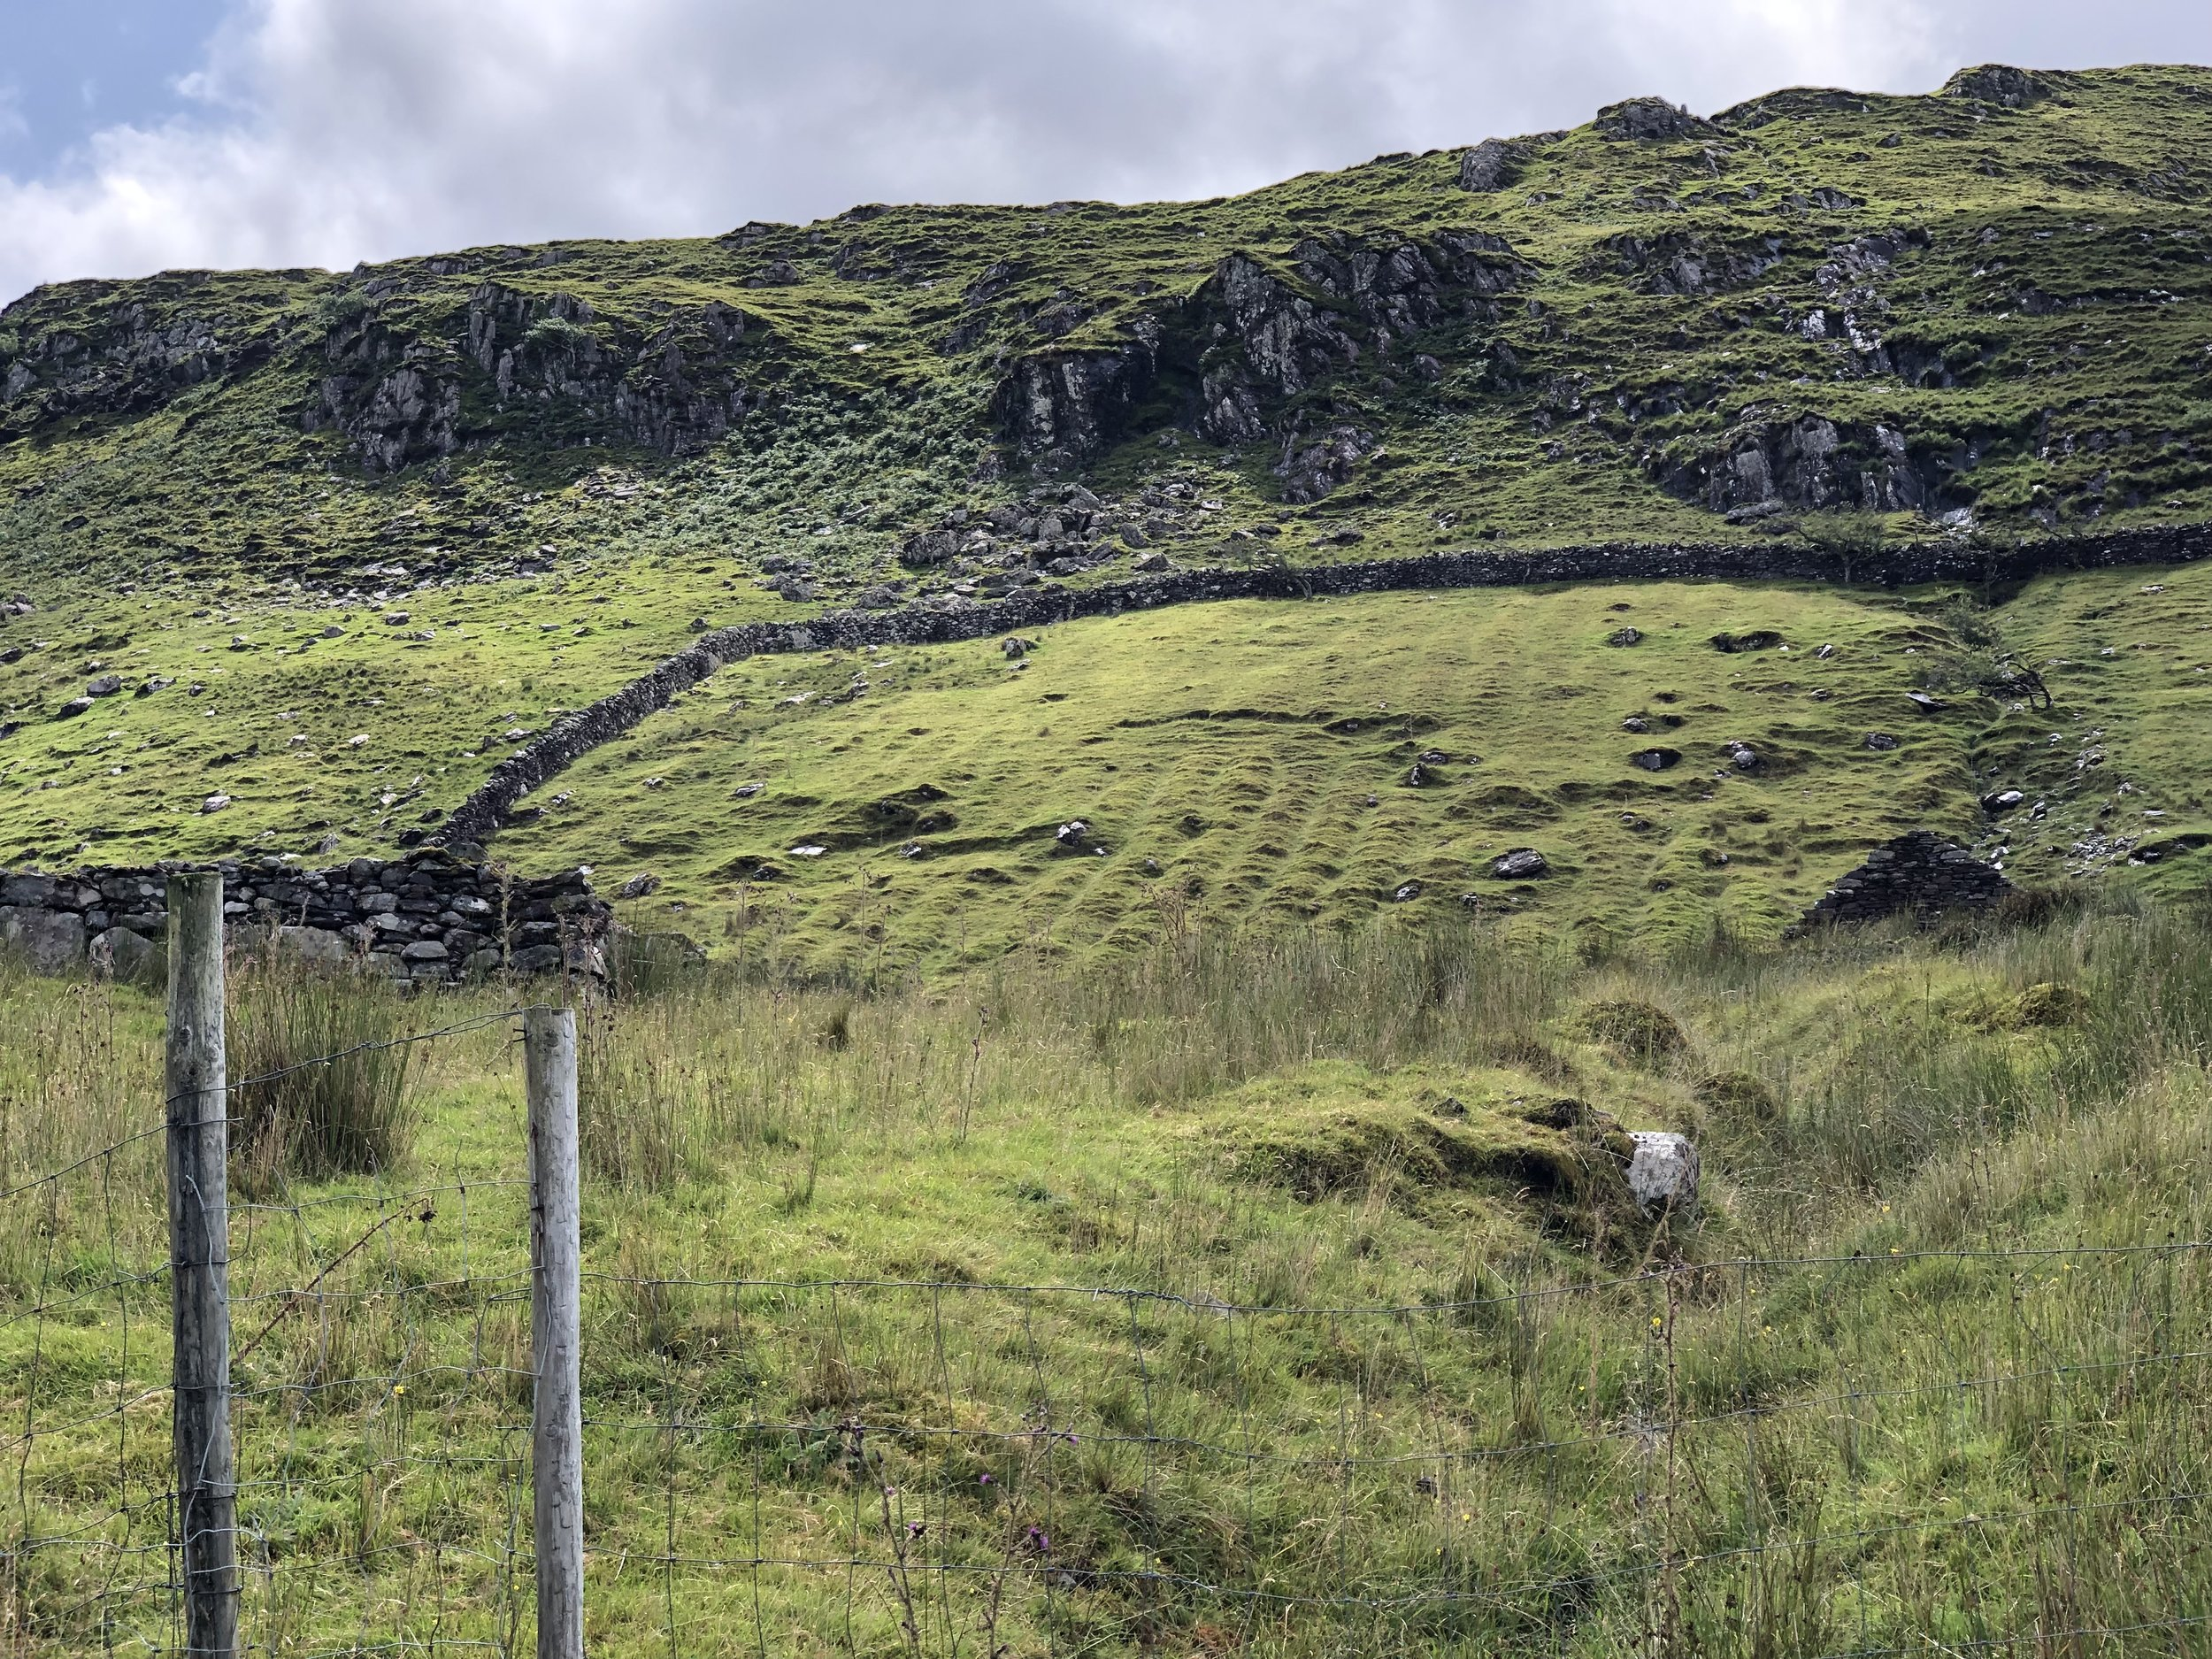 This field is where potatoes were once planted and harvested. See the ridges up the hill. That all came to an abrupt end in 1847 when the potato blight hit Ireland. Potatoes were the staple crop of Ireland at that time, which the peasants depended on for their daily sustenance and as a cash crop. Since the Irish only grew one variety, the blight literally wiped out their entire potato crop. Prior to 1847, there were 8 million people living in Ireland. The famine resulted in 1 million deaths due to starvation and another 2 million emigrated to the United States and other countries to avoid a similar fate. To this day Ireland's population is still less than 8 million.